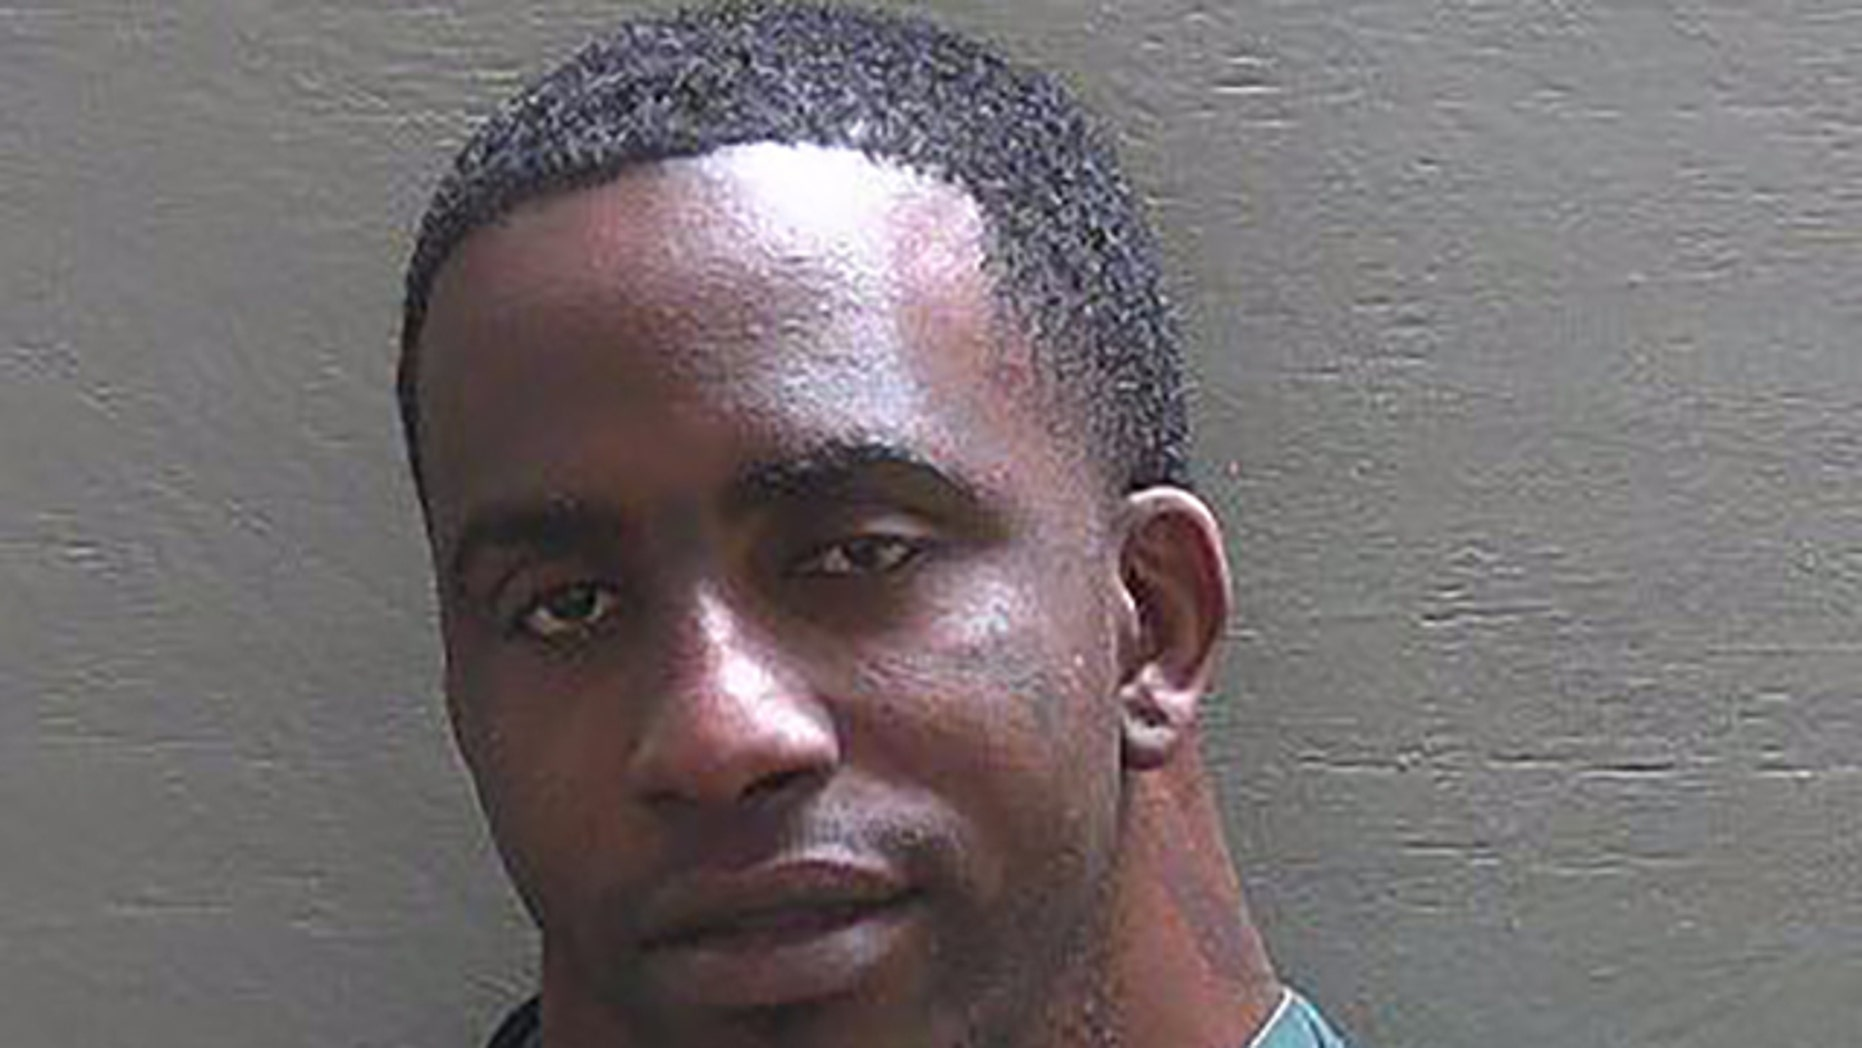 Charles Dion McDowell, known for wide neck and viral mugshots, was arrested again on Tuesday in Florida.